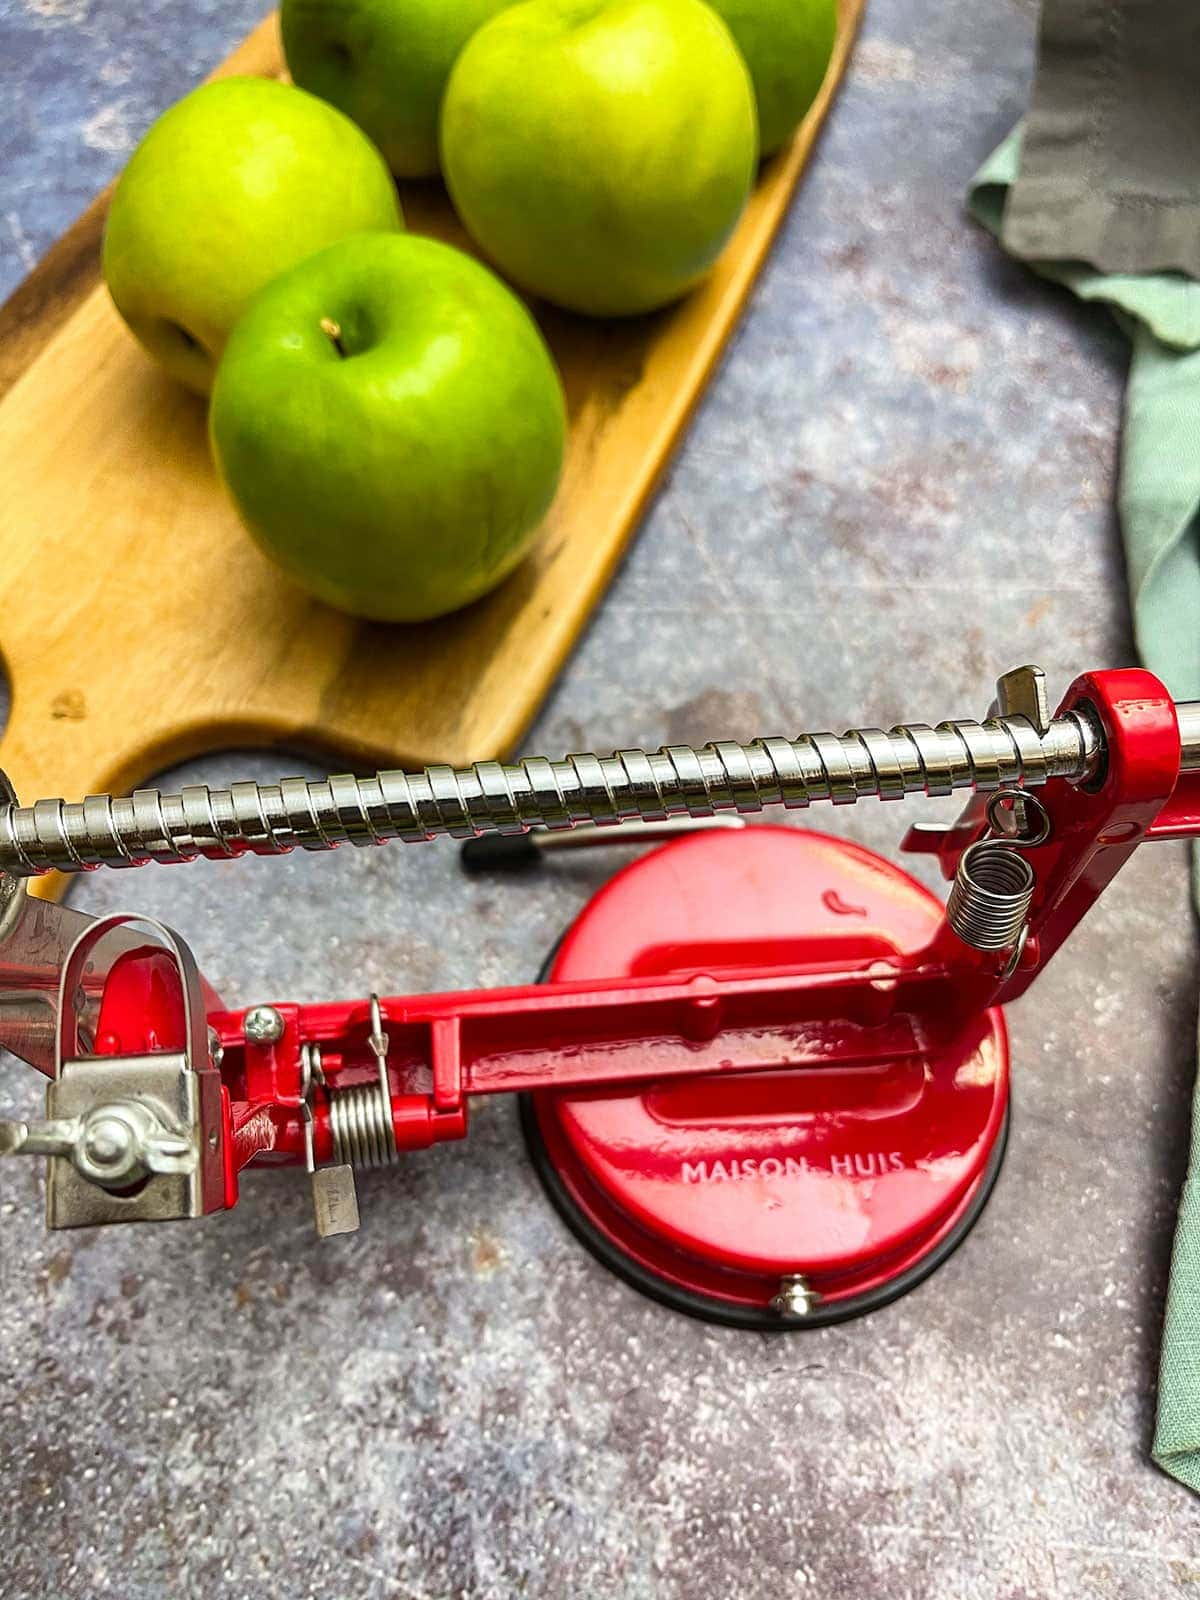 whole apples on cutting board with apple peeler